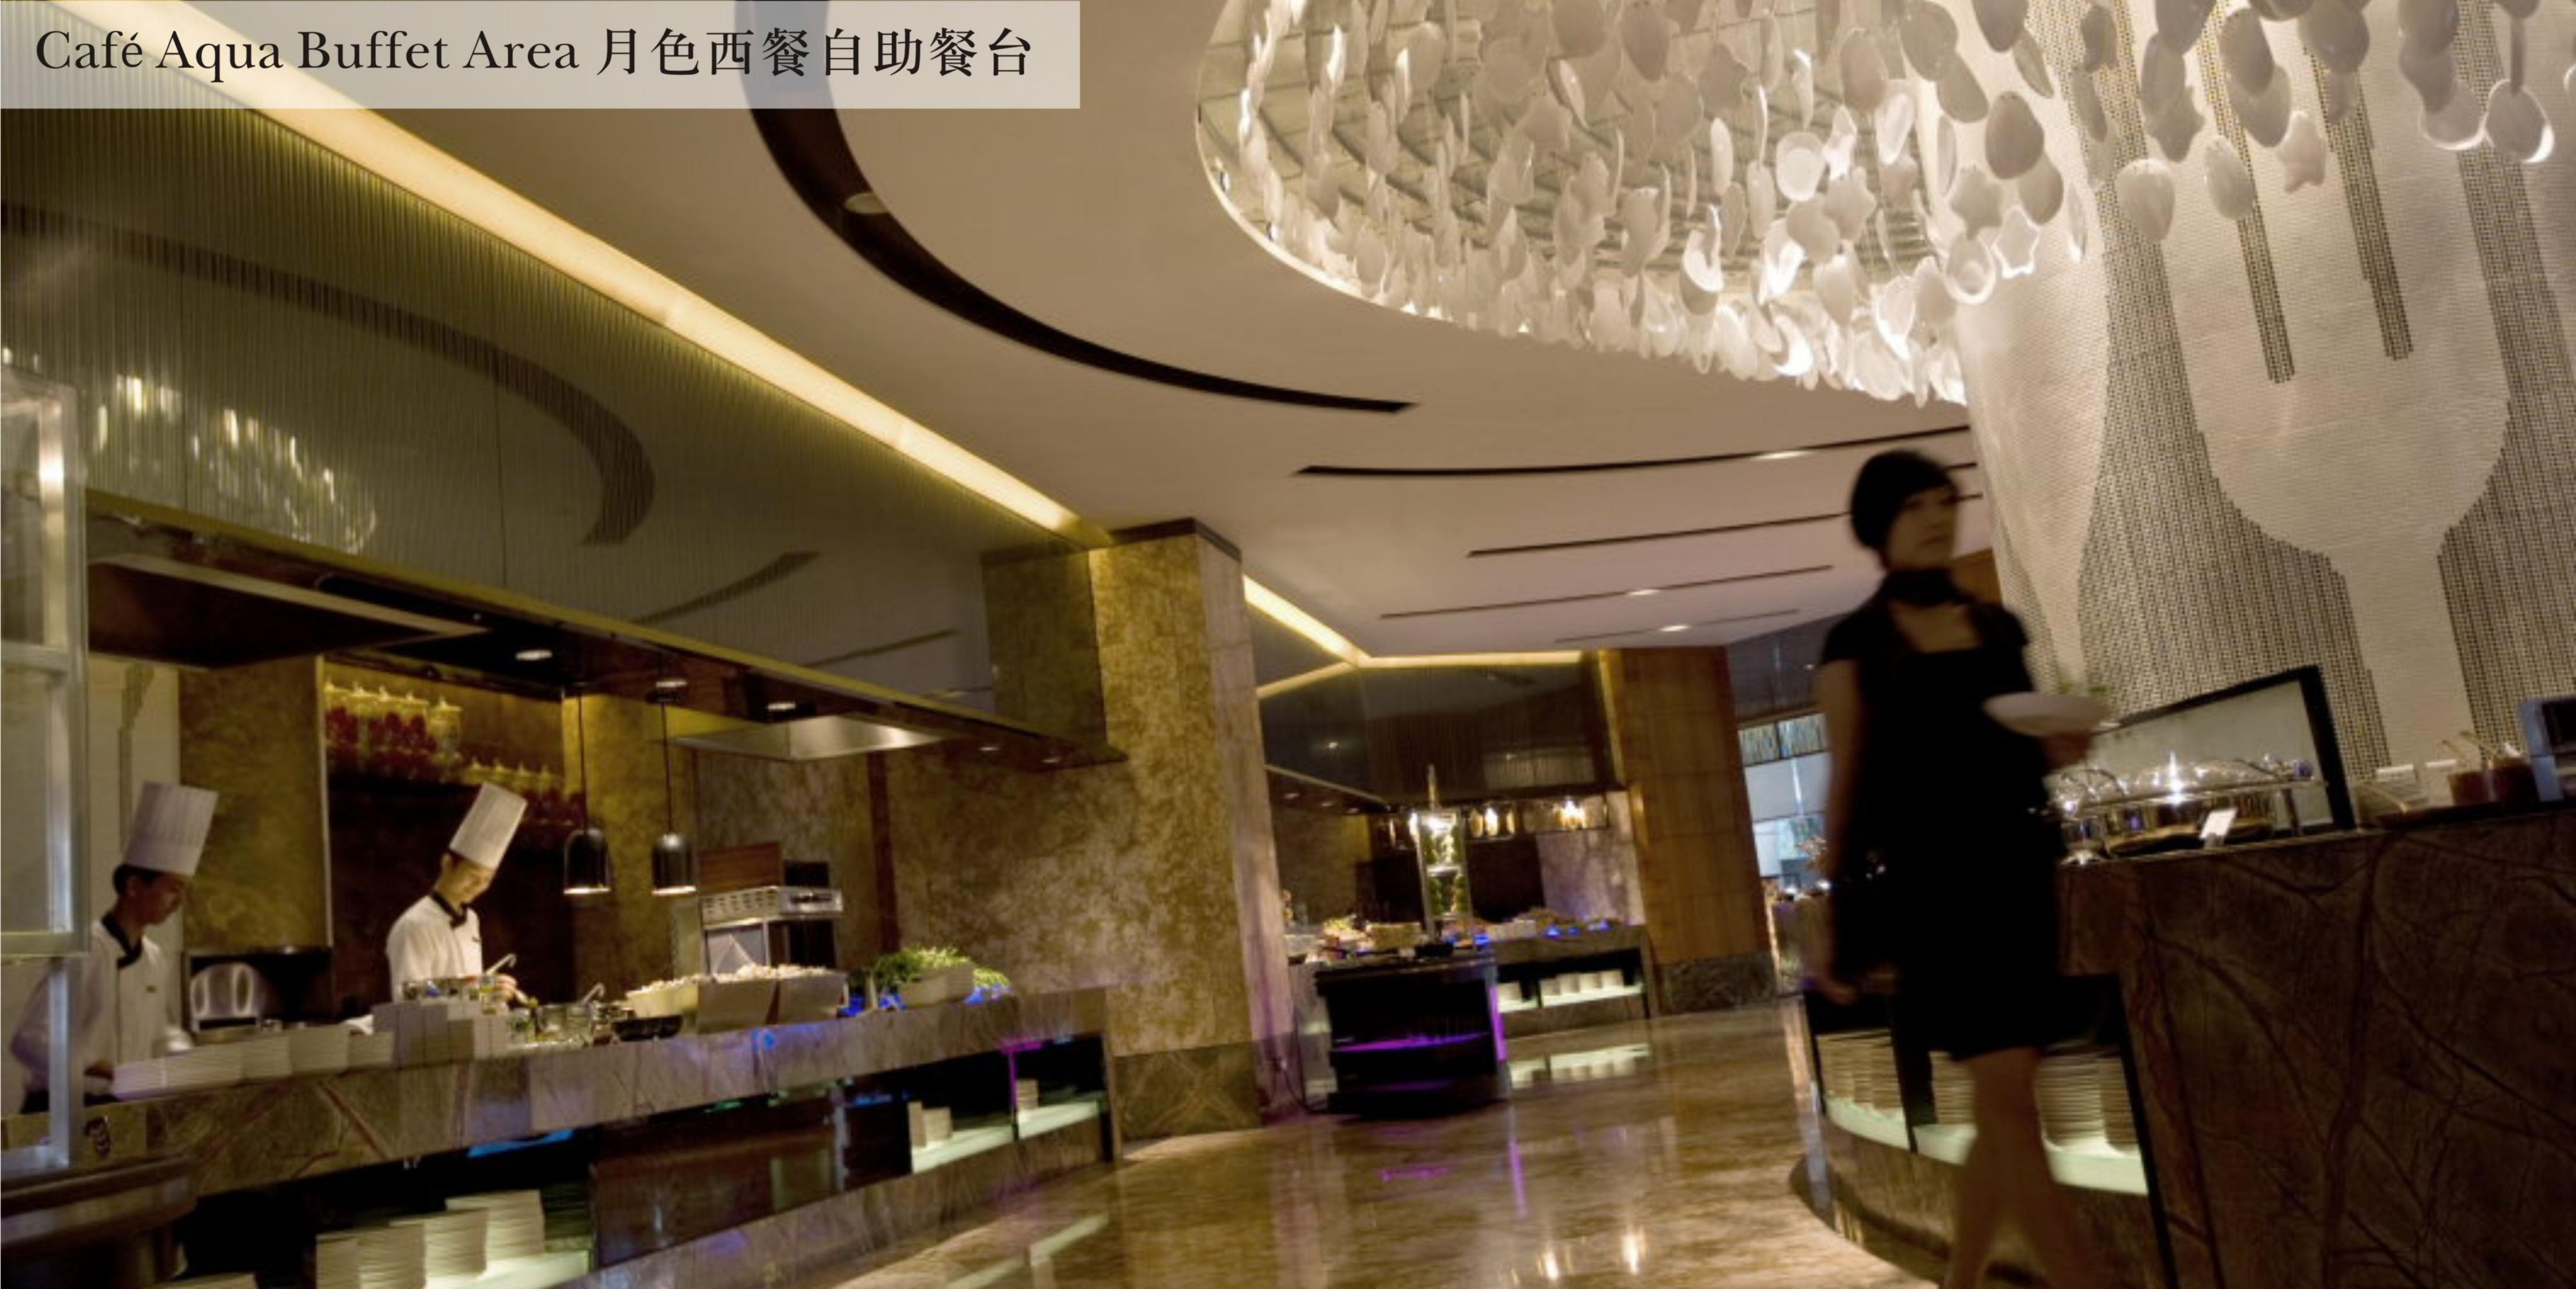 InterContinental Foshan - Foshan Guangdong